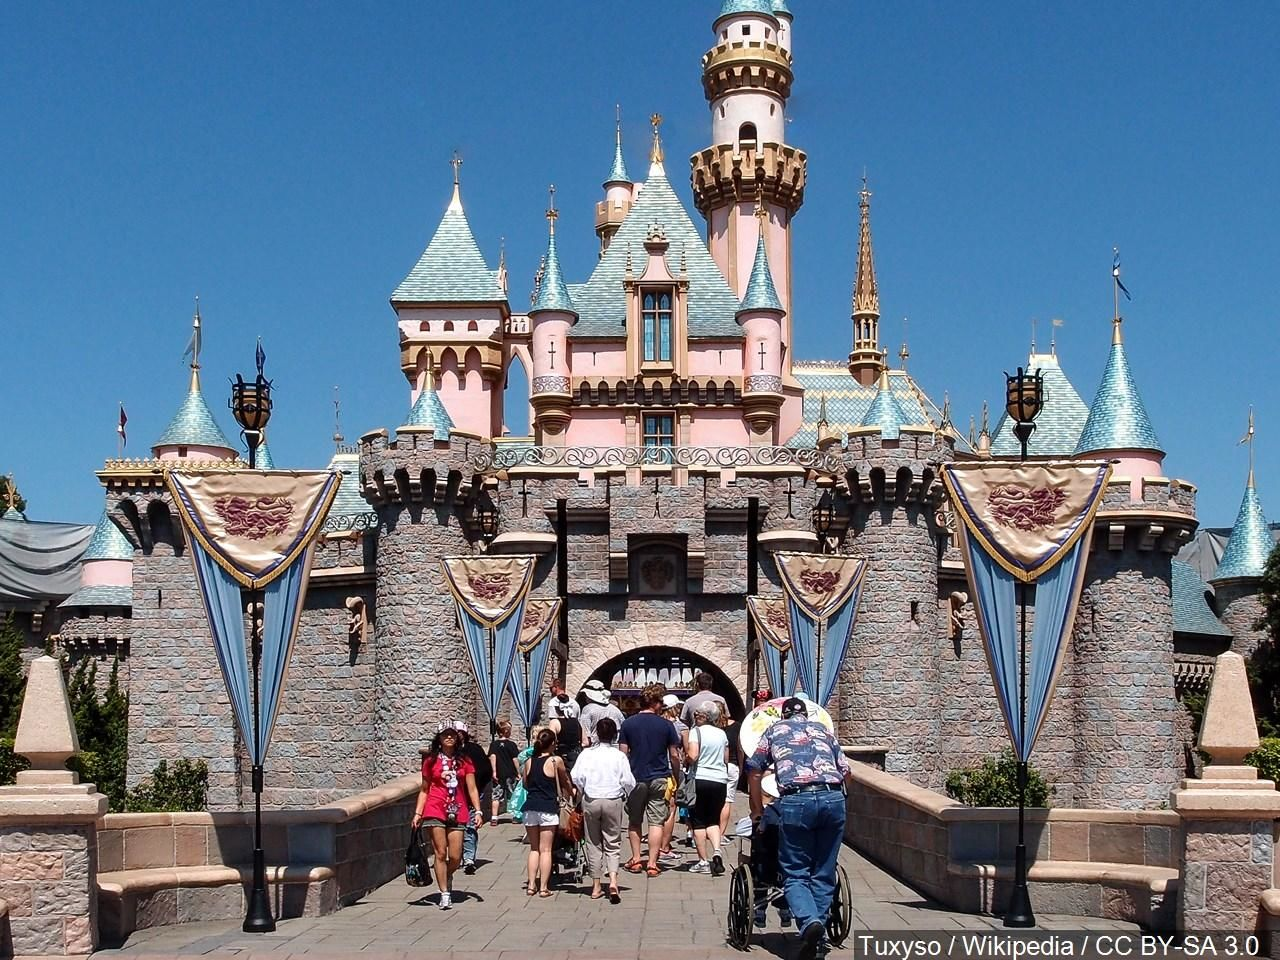 A family brawl broke out at Disneyland and it was caught on camera. (Photo: Tuxyso / Wikipedia / CC BY-SA 3.0 via MGN)